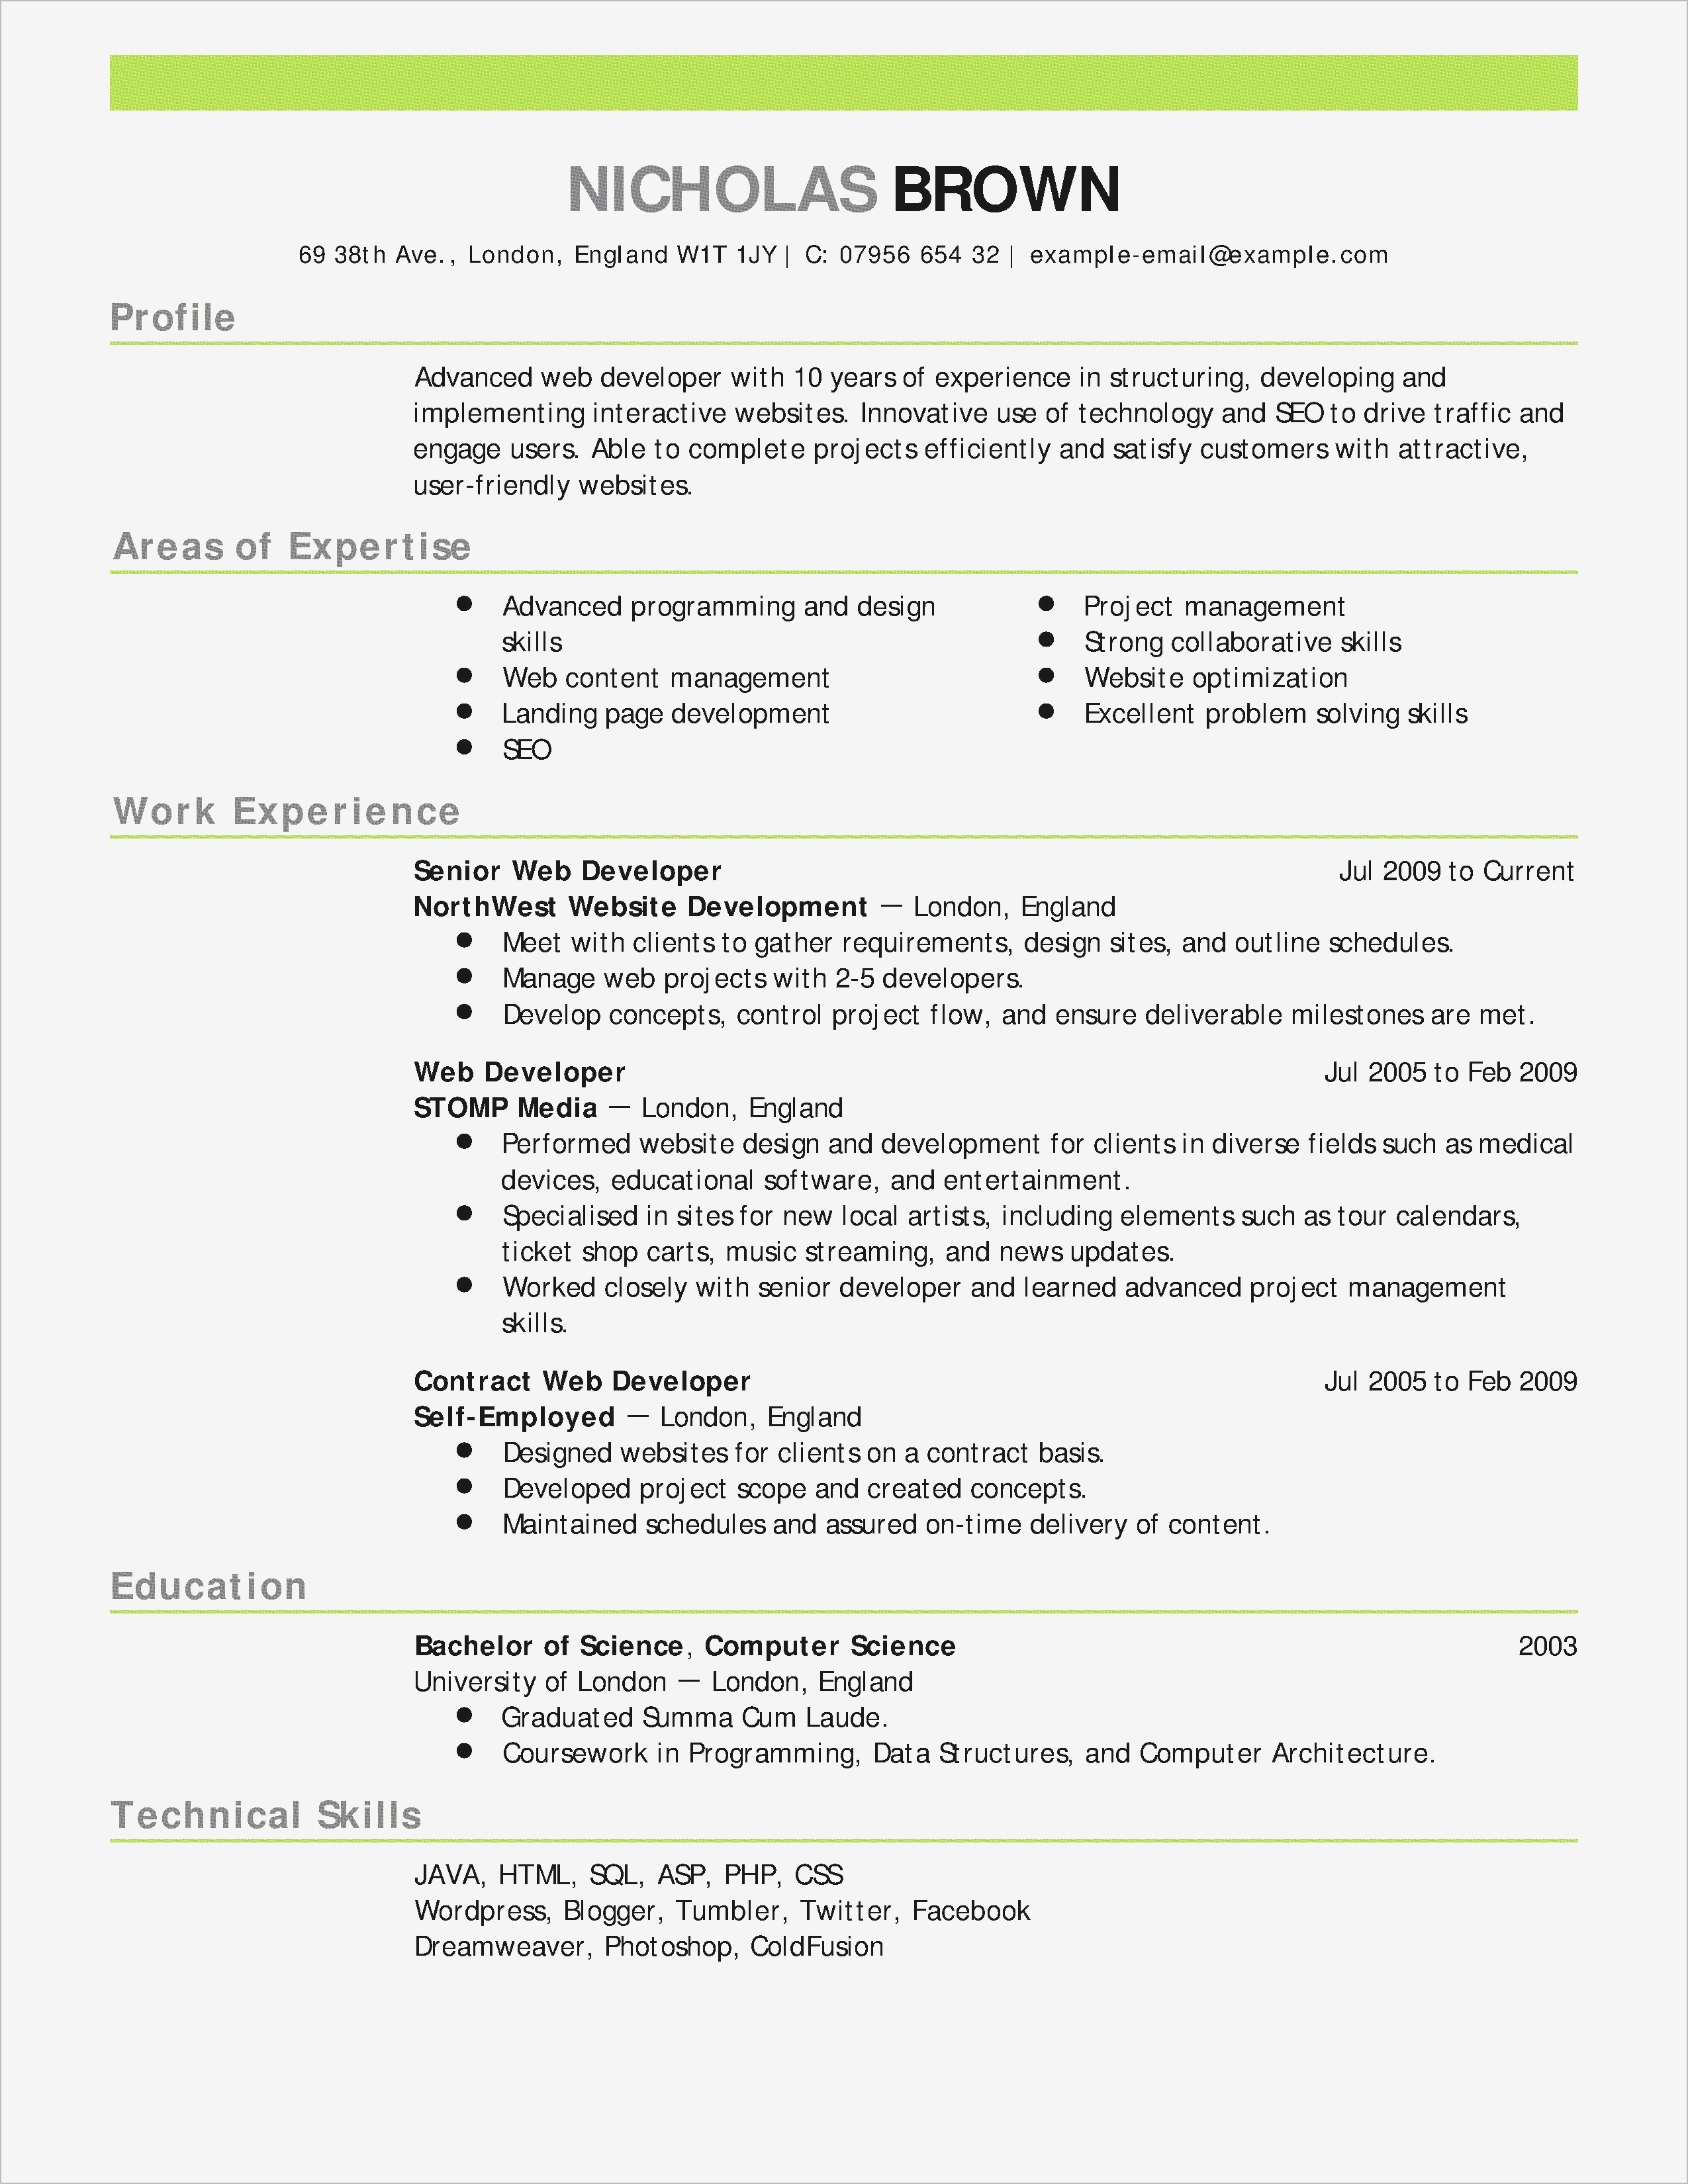 Resume Writing Services Boston - Resumes and Cover Letters Cover Page for Resume New Elegant Cover